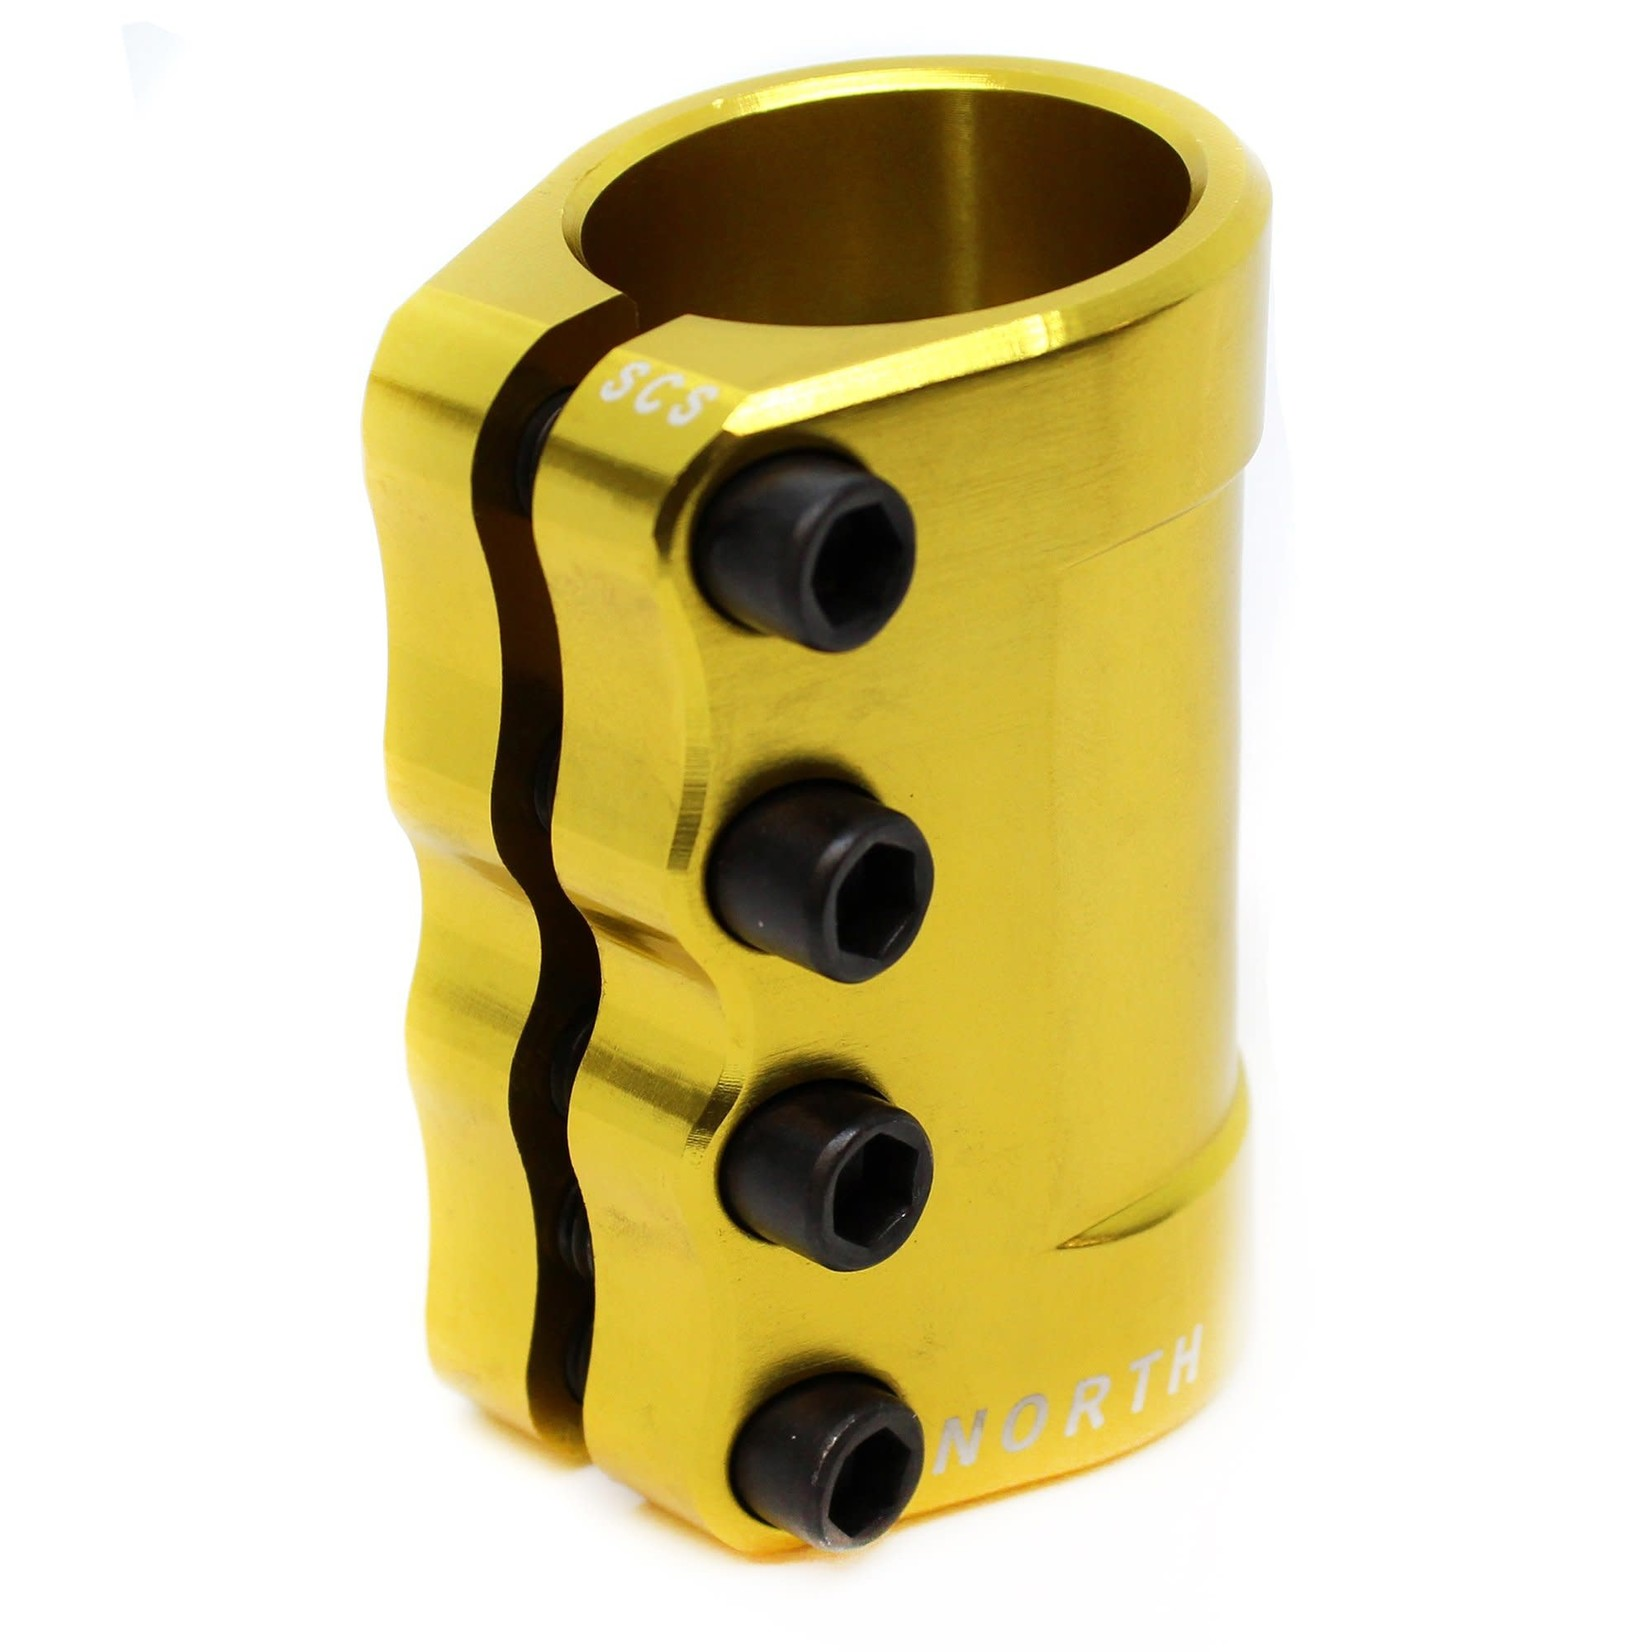 North North - Hammer SCS Clamp 2020 - Gold